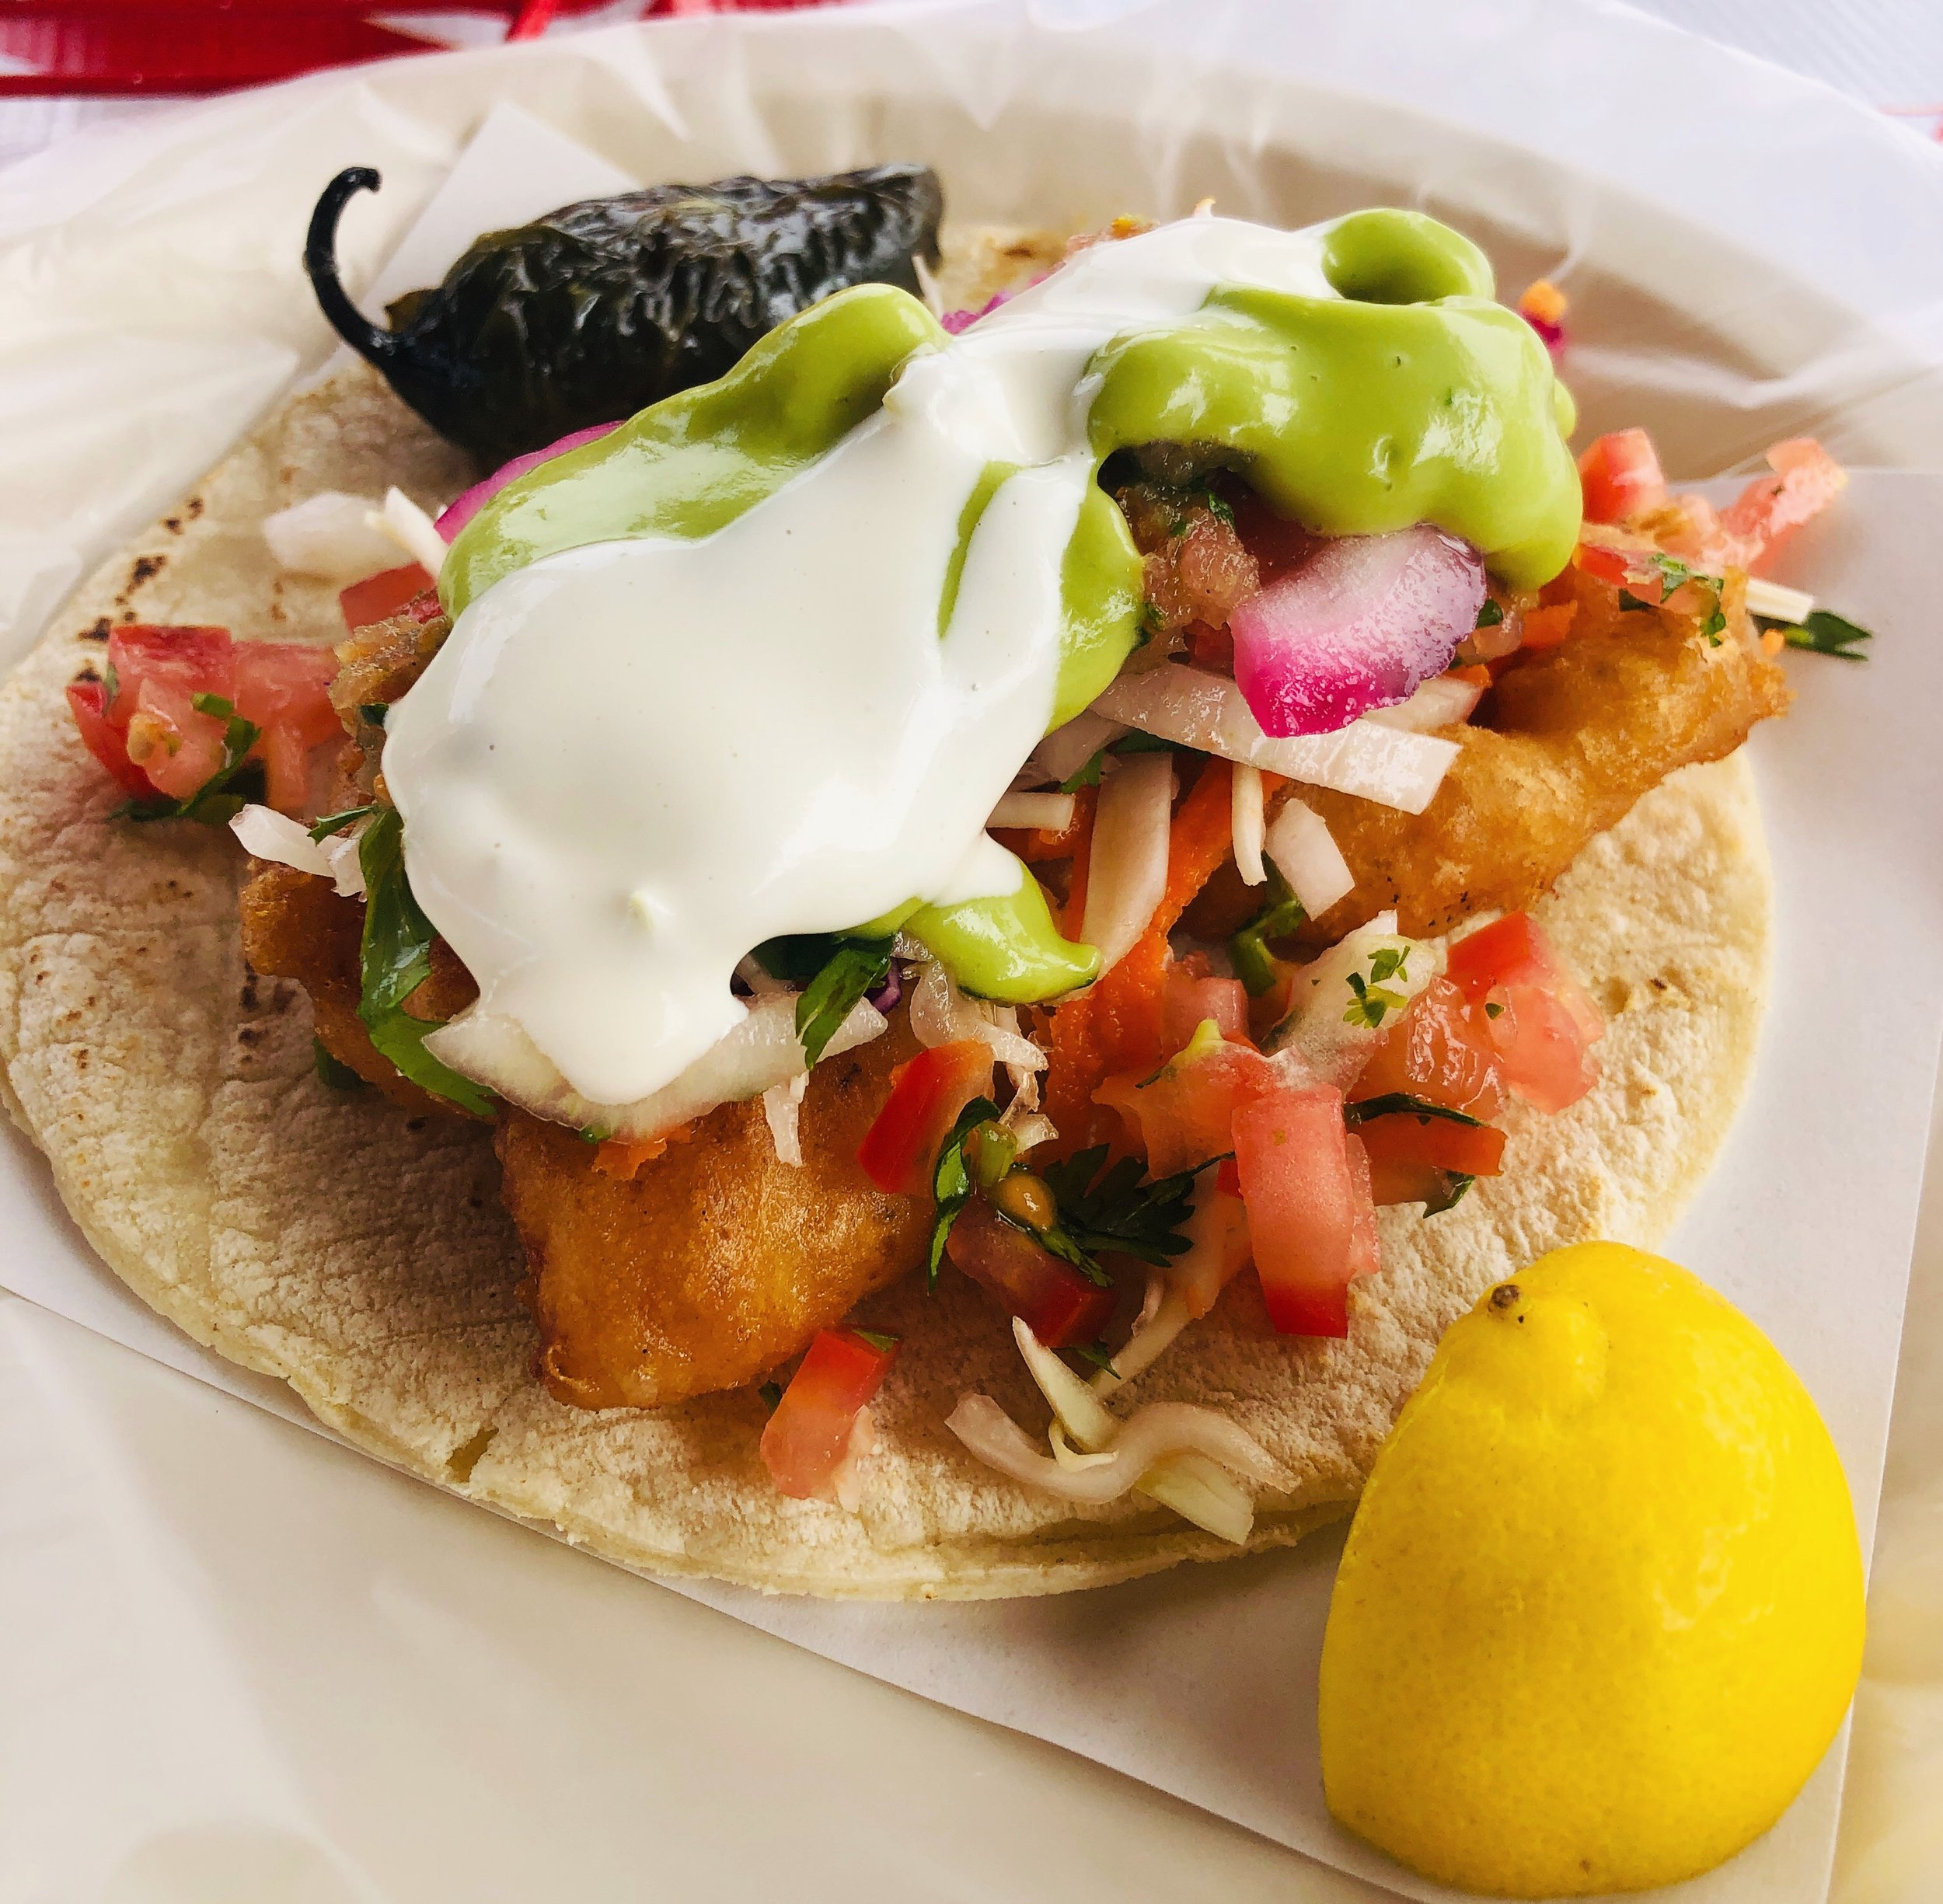 Option 1: Fish Tacos! - Fresh Squeezed Palomas, Roasted Habanero Salsa, Avocado Crema, Hand Made Corn Tortillas, Fried Shrimp, Blistered & Marinated Serrano Peppers and Pickled Onions.